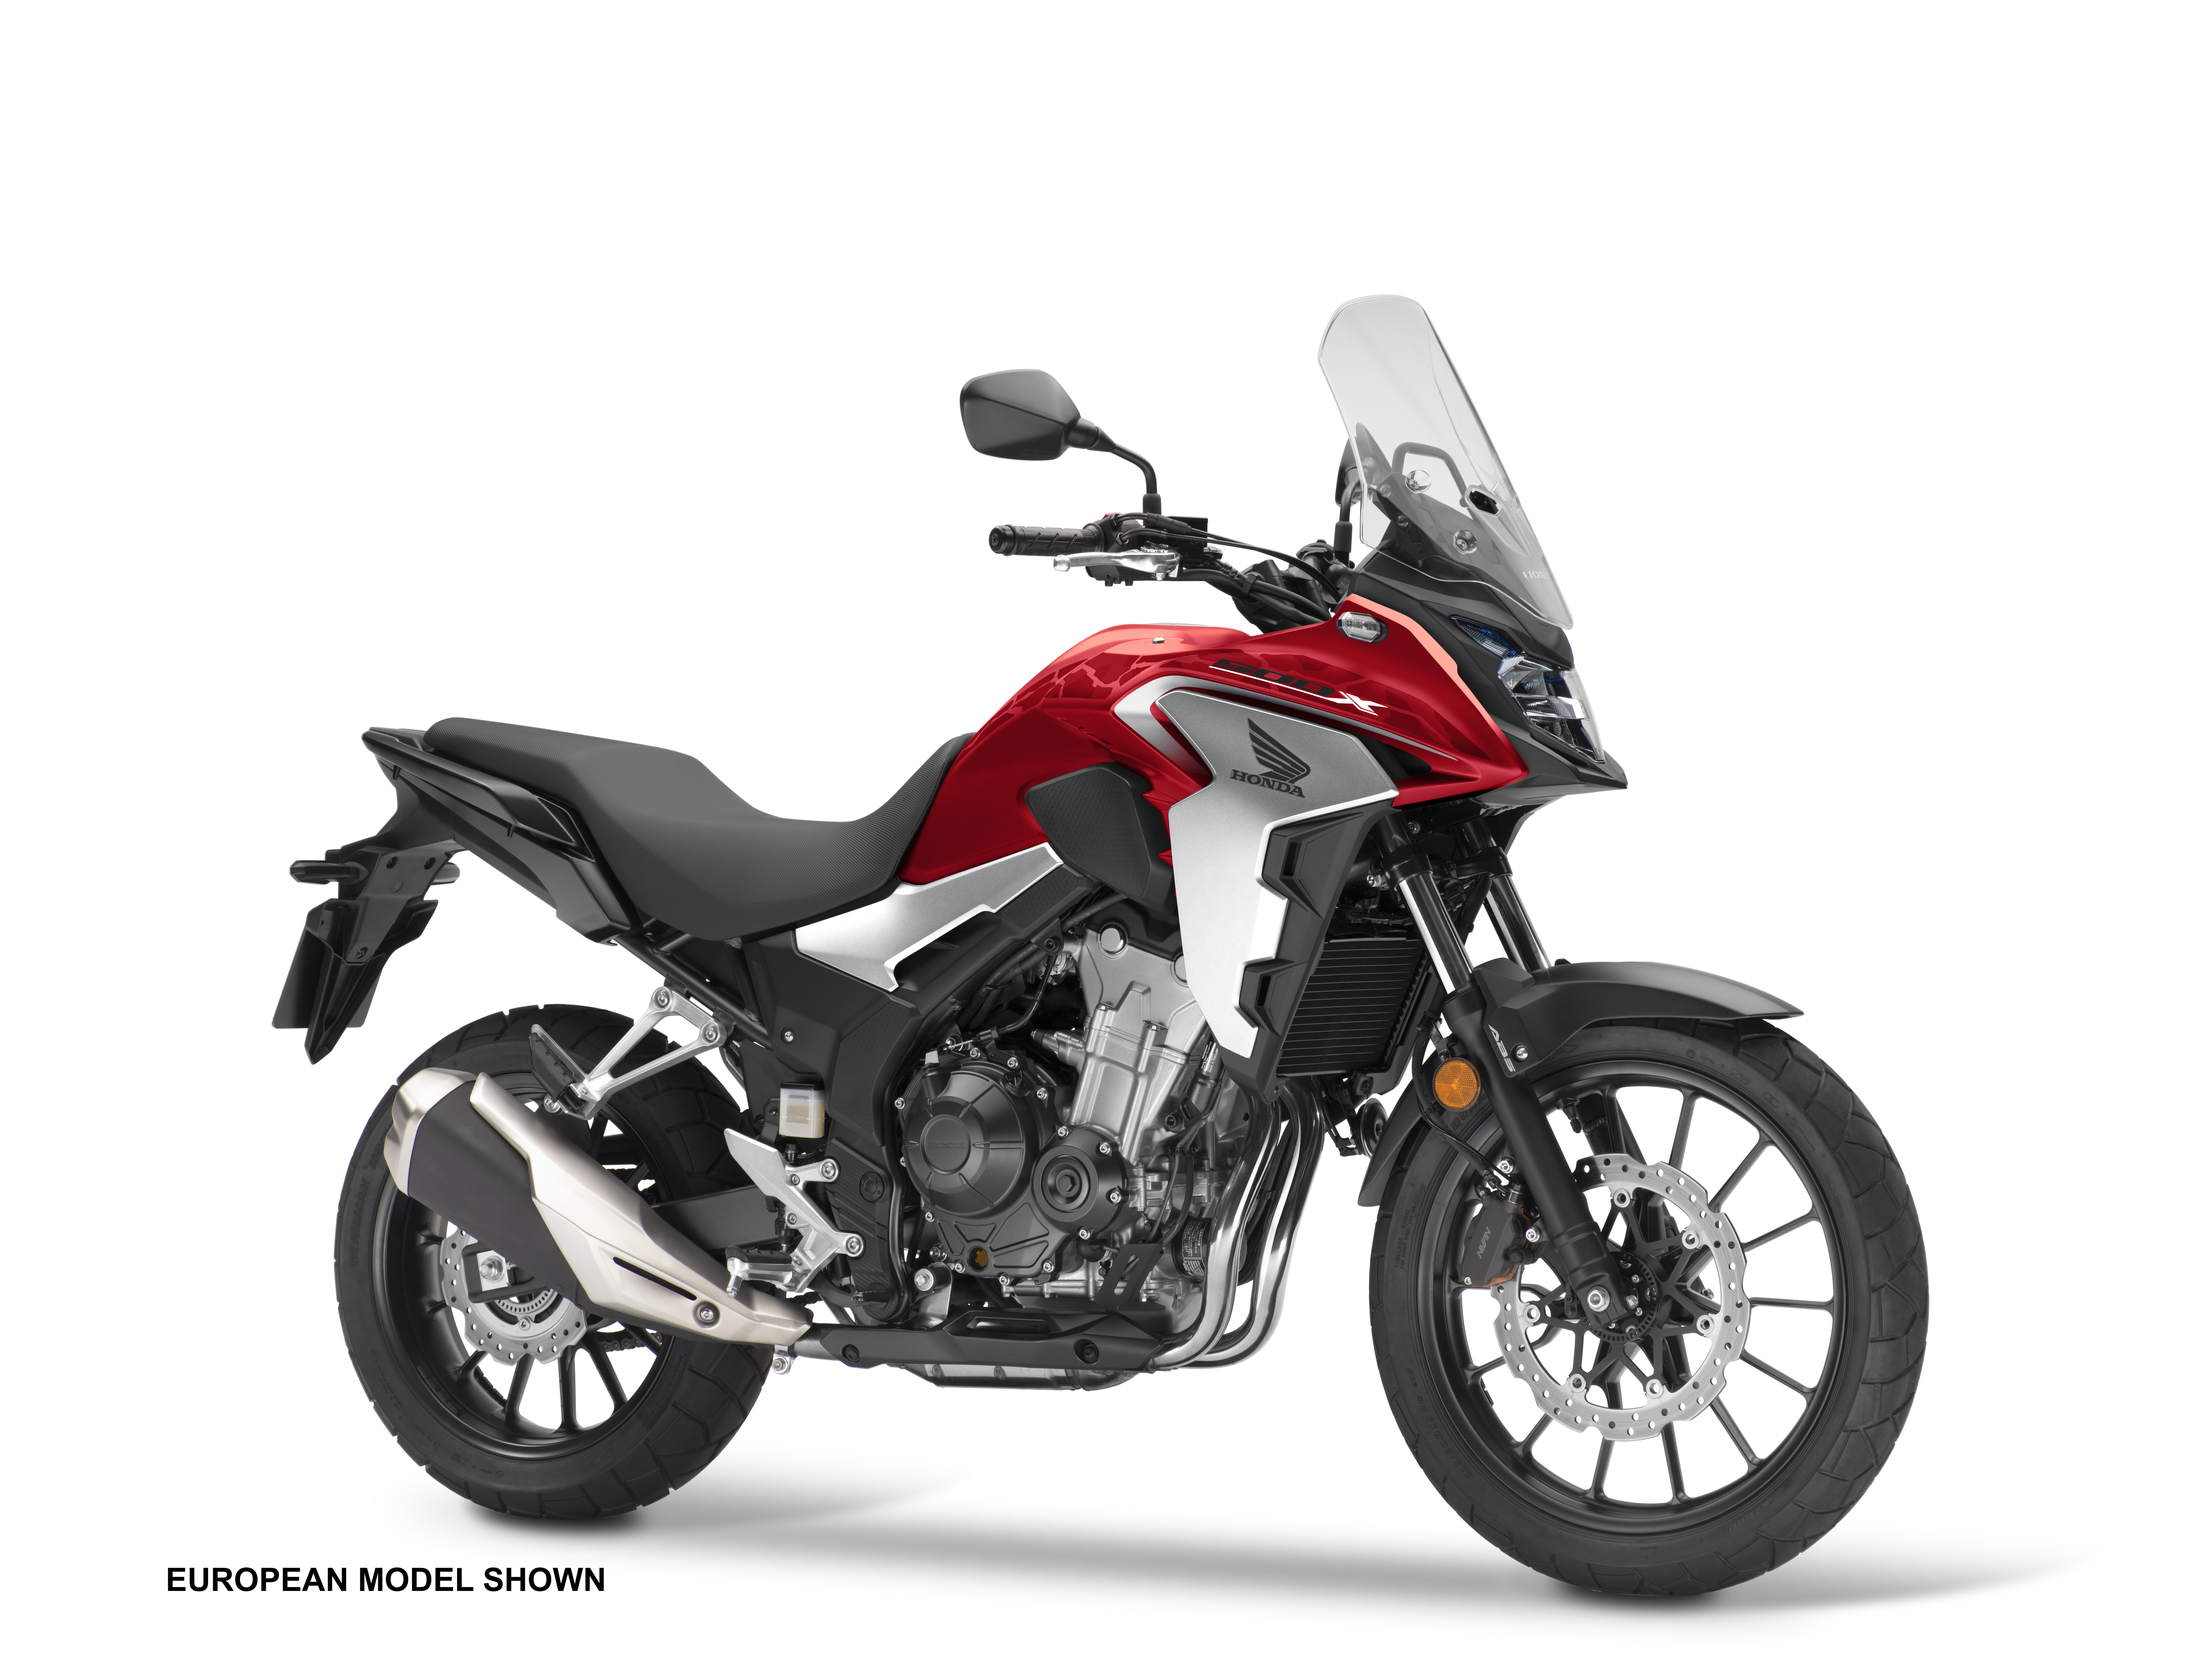 honda unveils updated 2019 cb500x adventure motorcycle. Black Bedroom Furniture Sets. Home Design Ideas